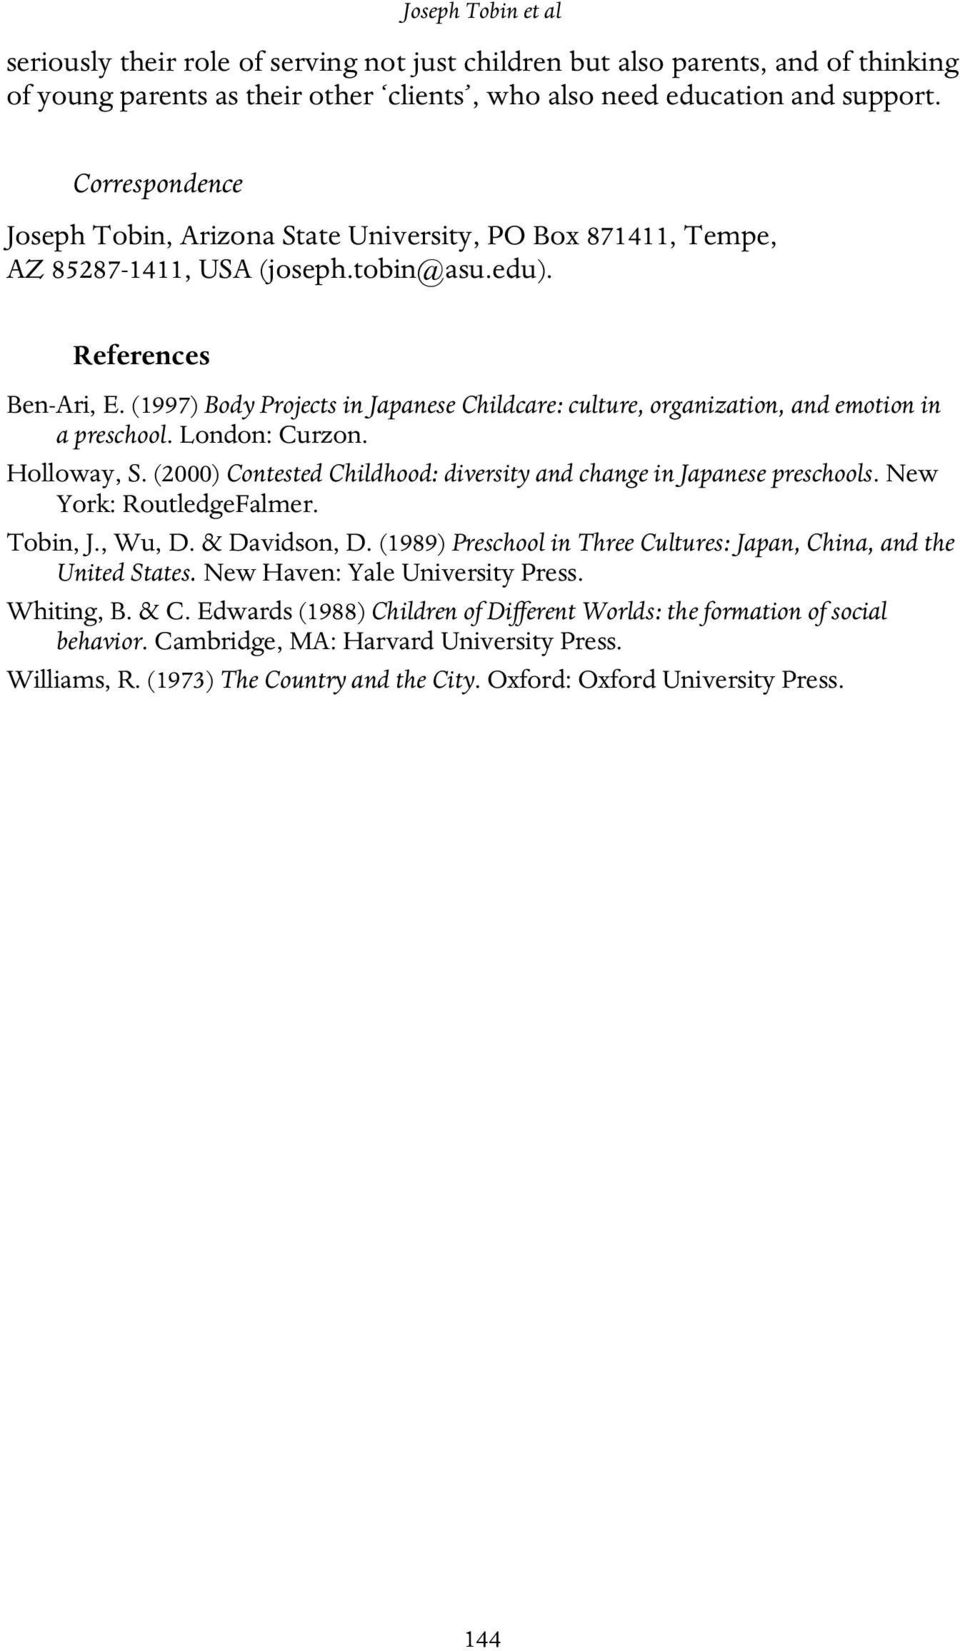 (1997) Body Projects in Japanese Childcare: culture, organization, and emotion in a preschool. London: Curzon. Holloway, S. (2000) Contested Childhood: diversity and change in Japanese preschools.